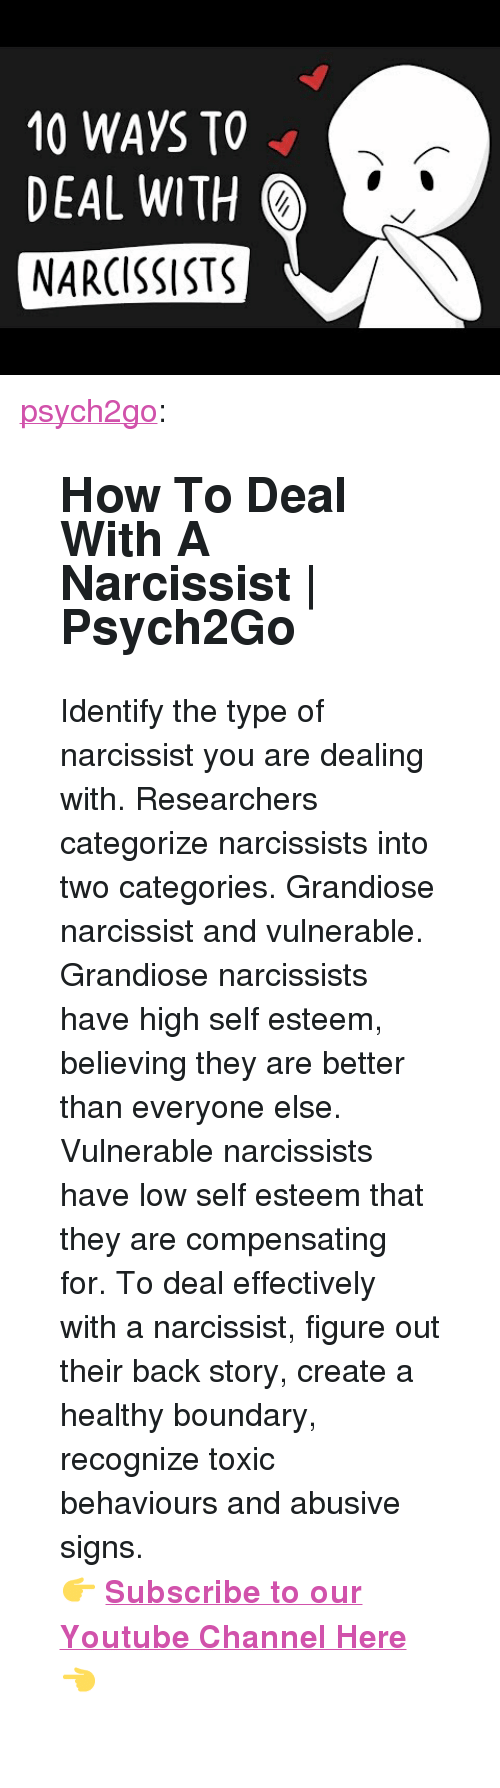 "Narcissist: 10 WAYS TO <  DEAL WITH  NARCISSISTS <p><a href=""http://psych2go.me/post/171850859617/how-to-deal-with-a-narcissist-psych2go-identify"" class=""tumblr_blog"">psych2go</a>:</p> <blockquote> <h2><b>How To Deal With A Narcissist 